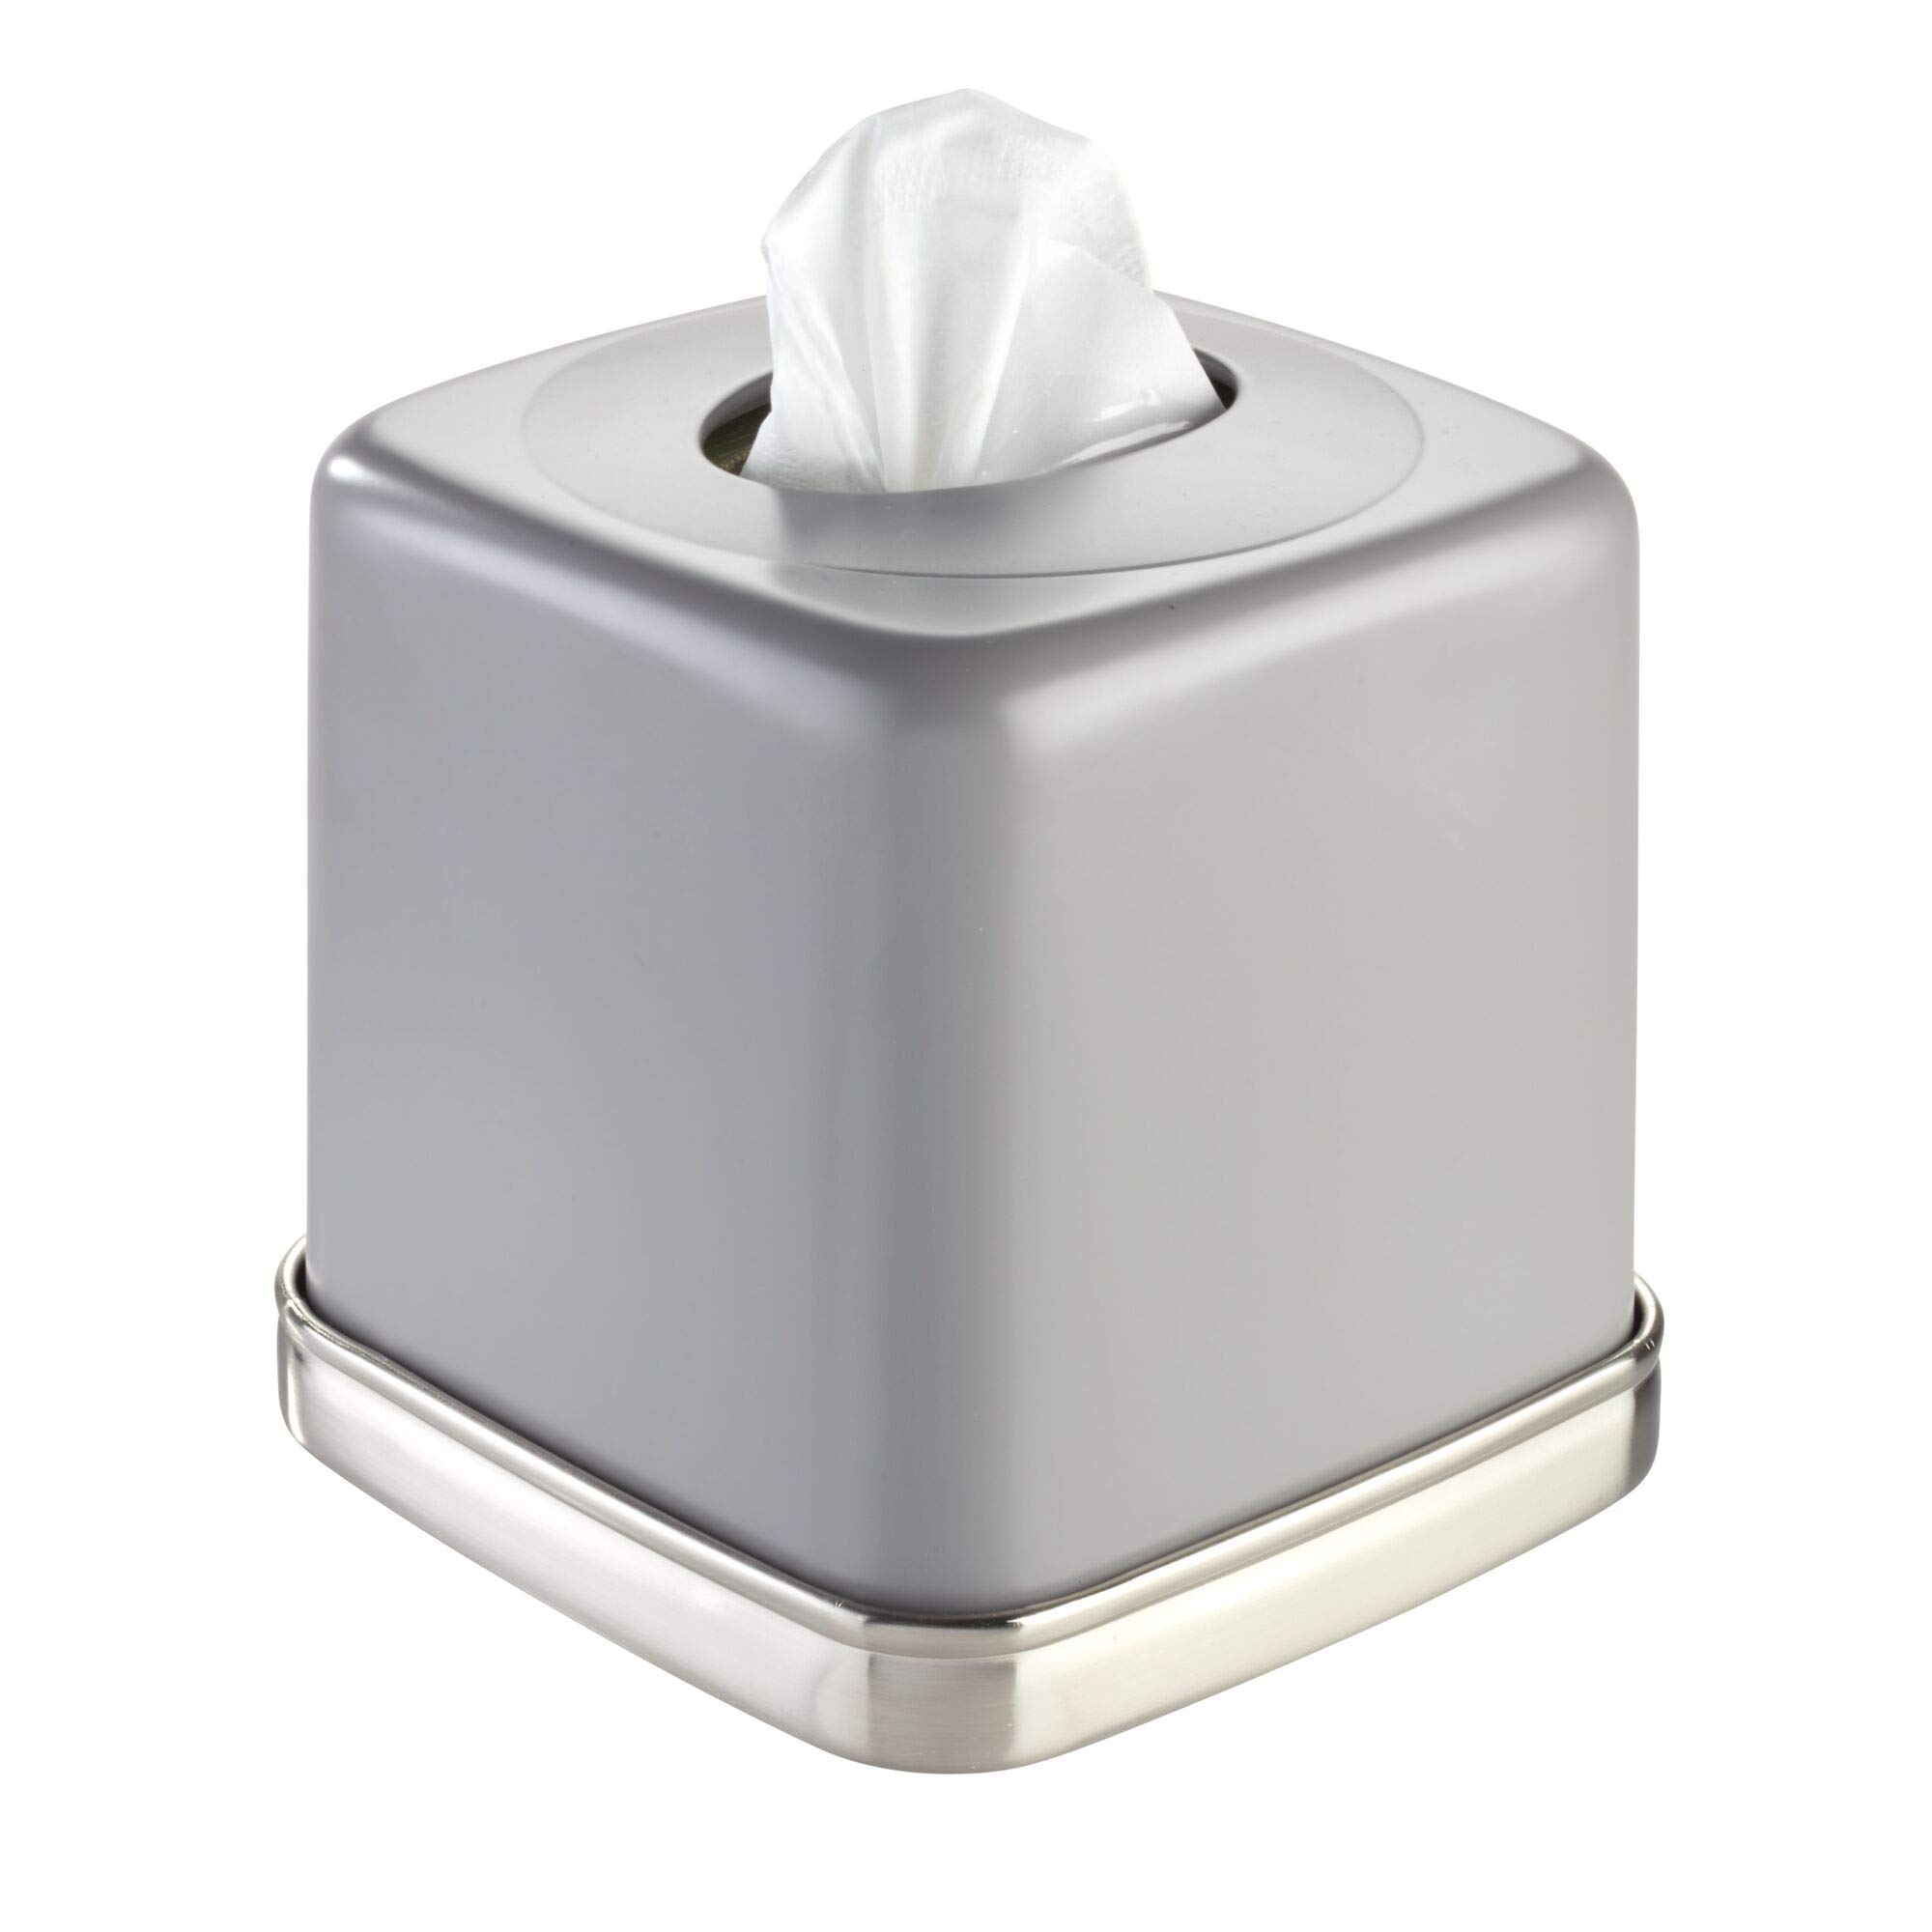 iDesign York Boutique Facial Tissue Box Cover Holder for Bathroom Vanity Countertops, Matte Gray and Brushed Nickel